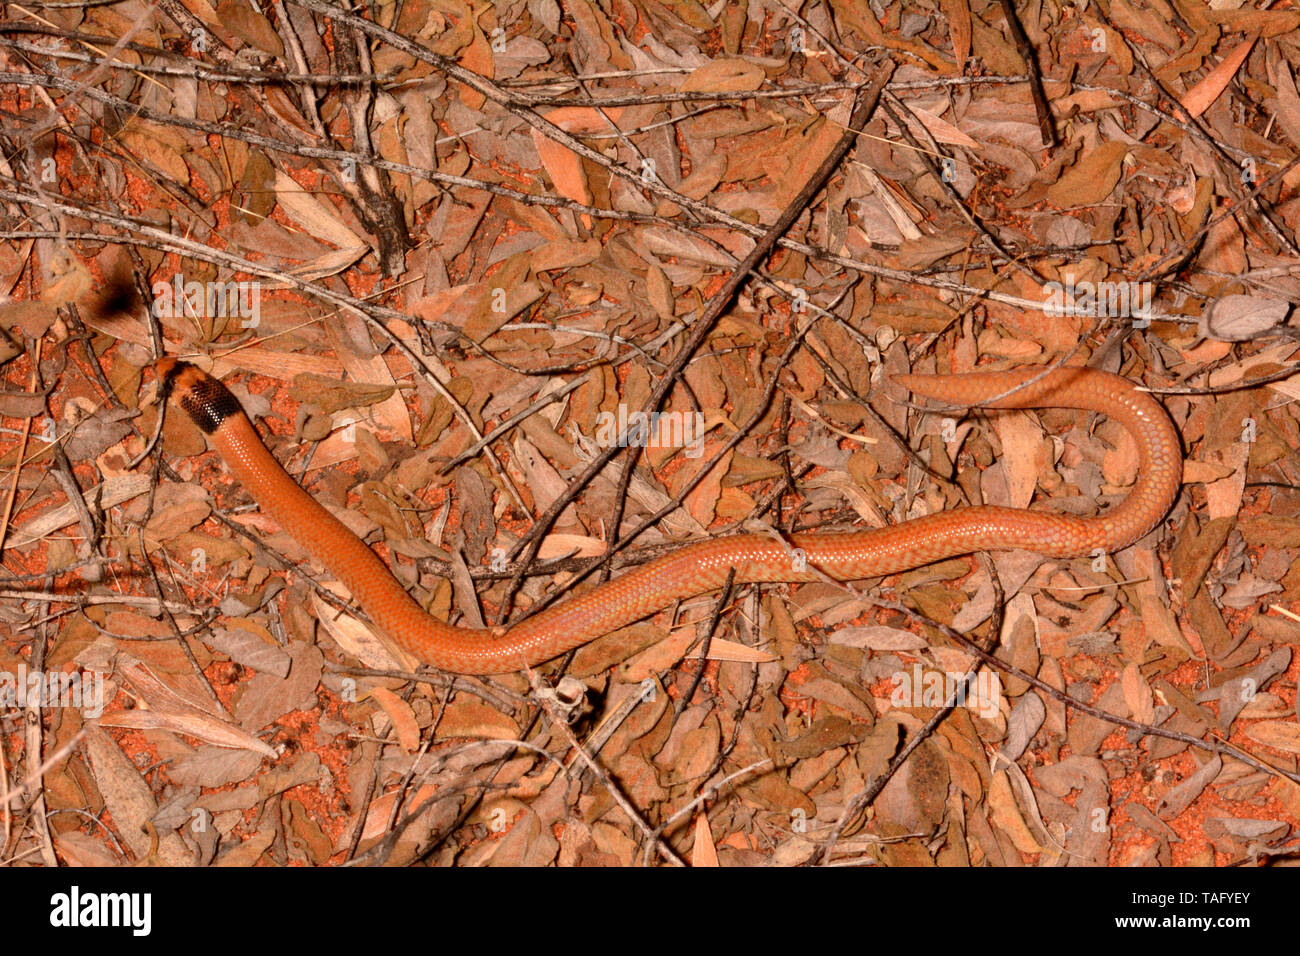 Western Hooded Scaly-foot (Pygopus nigriceps), Yulara, Red Center, NT, Australie - Stock Image